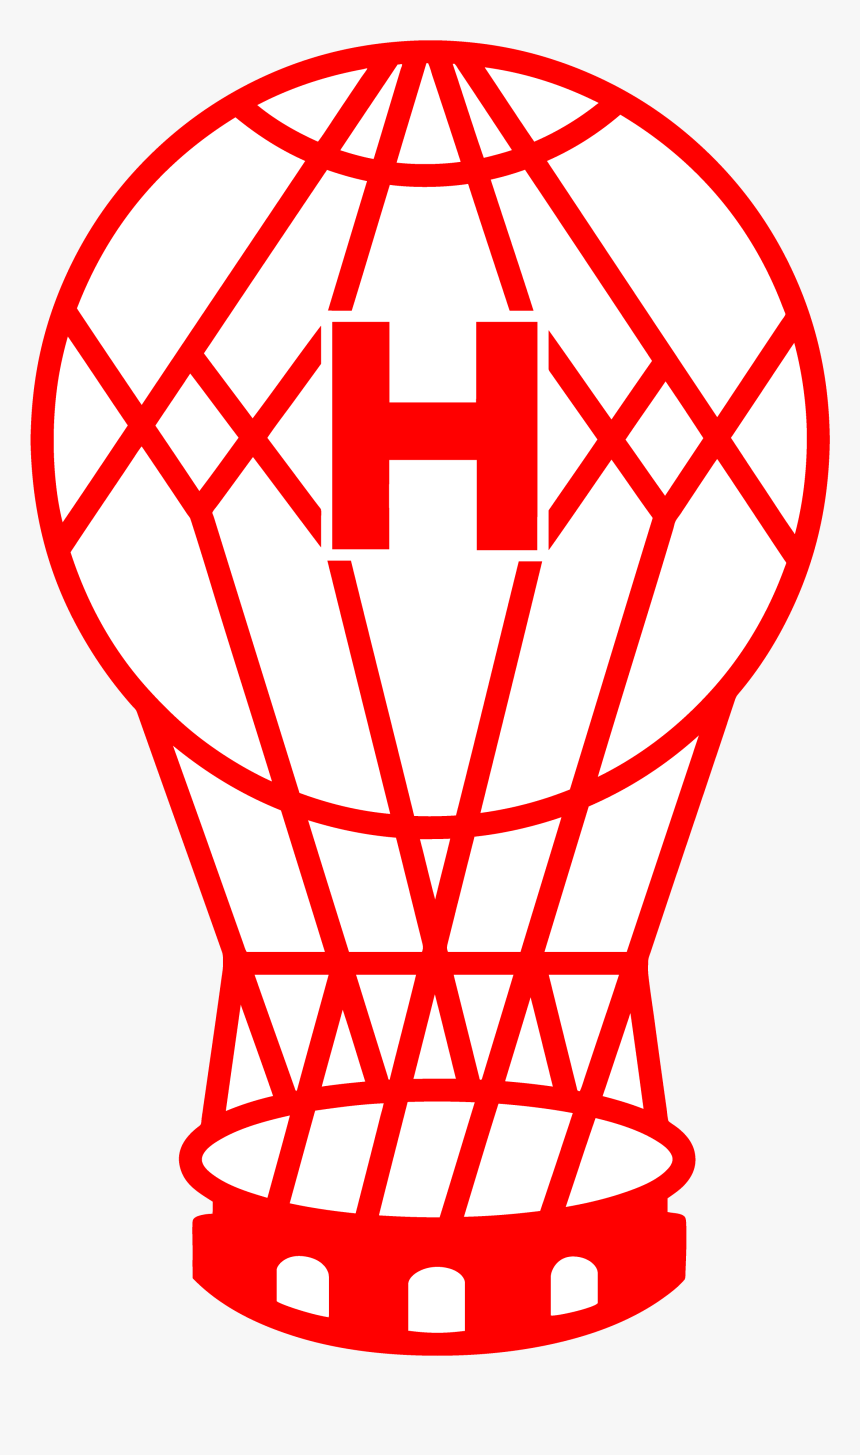 Club Atletico Huracan Escudo, HD Png Download, Free Download